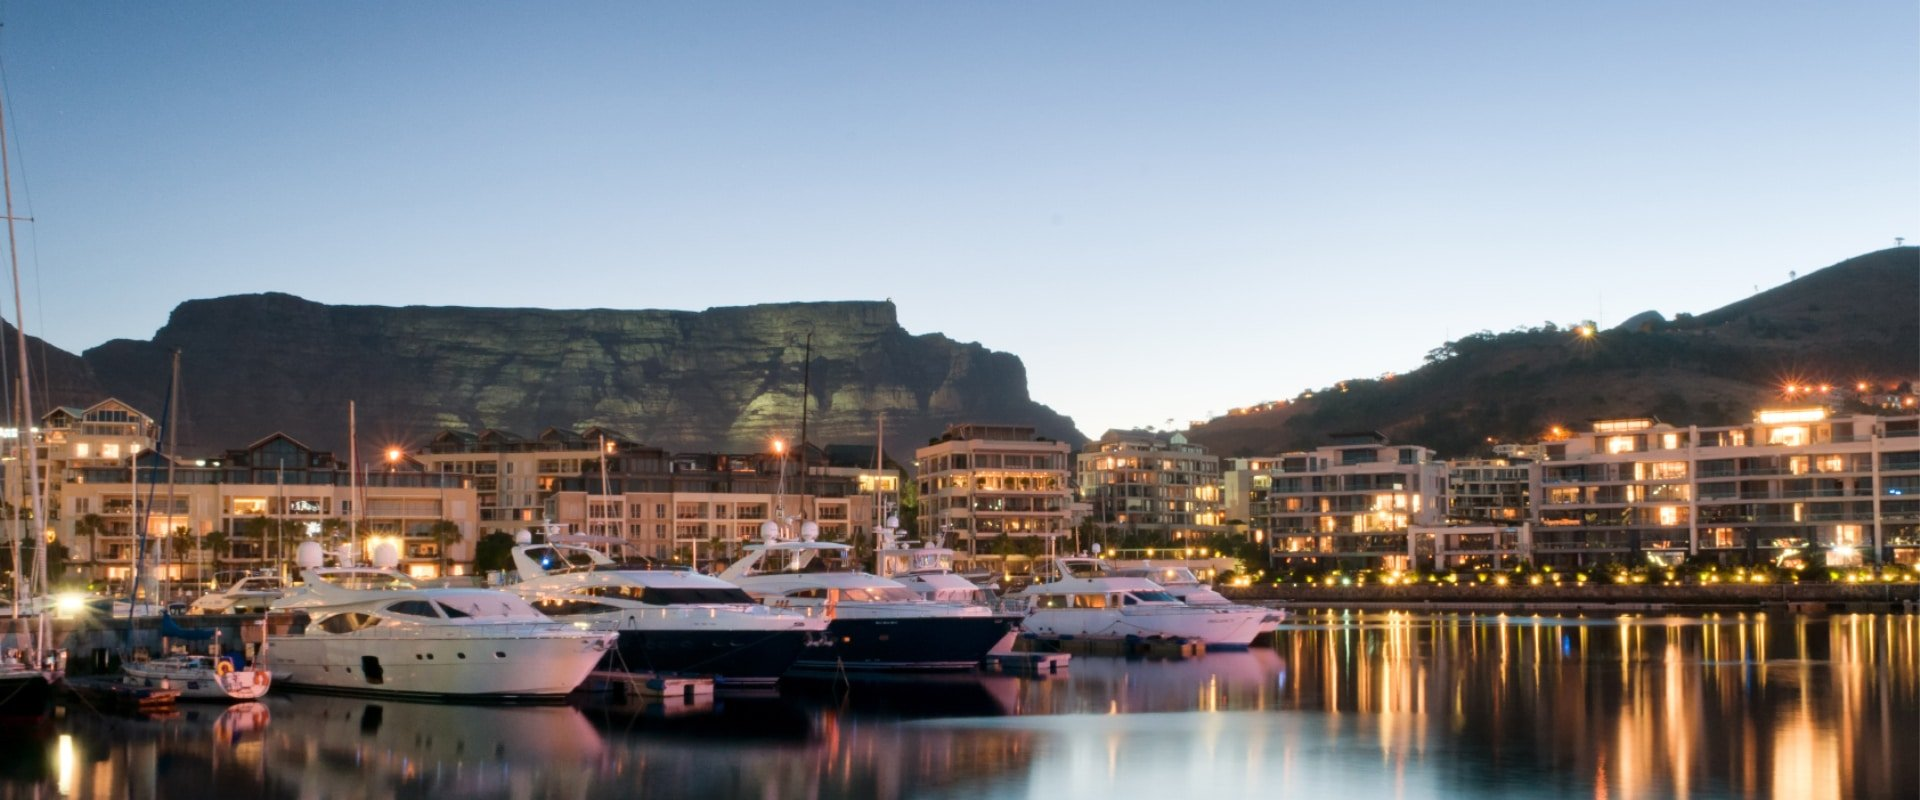 Enjoy world-class services offered by the popular V&A Waterfront